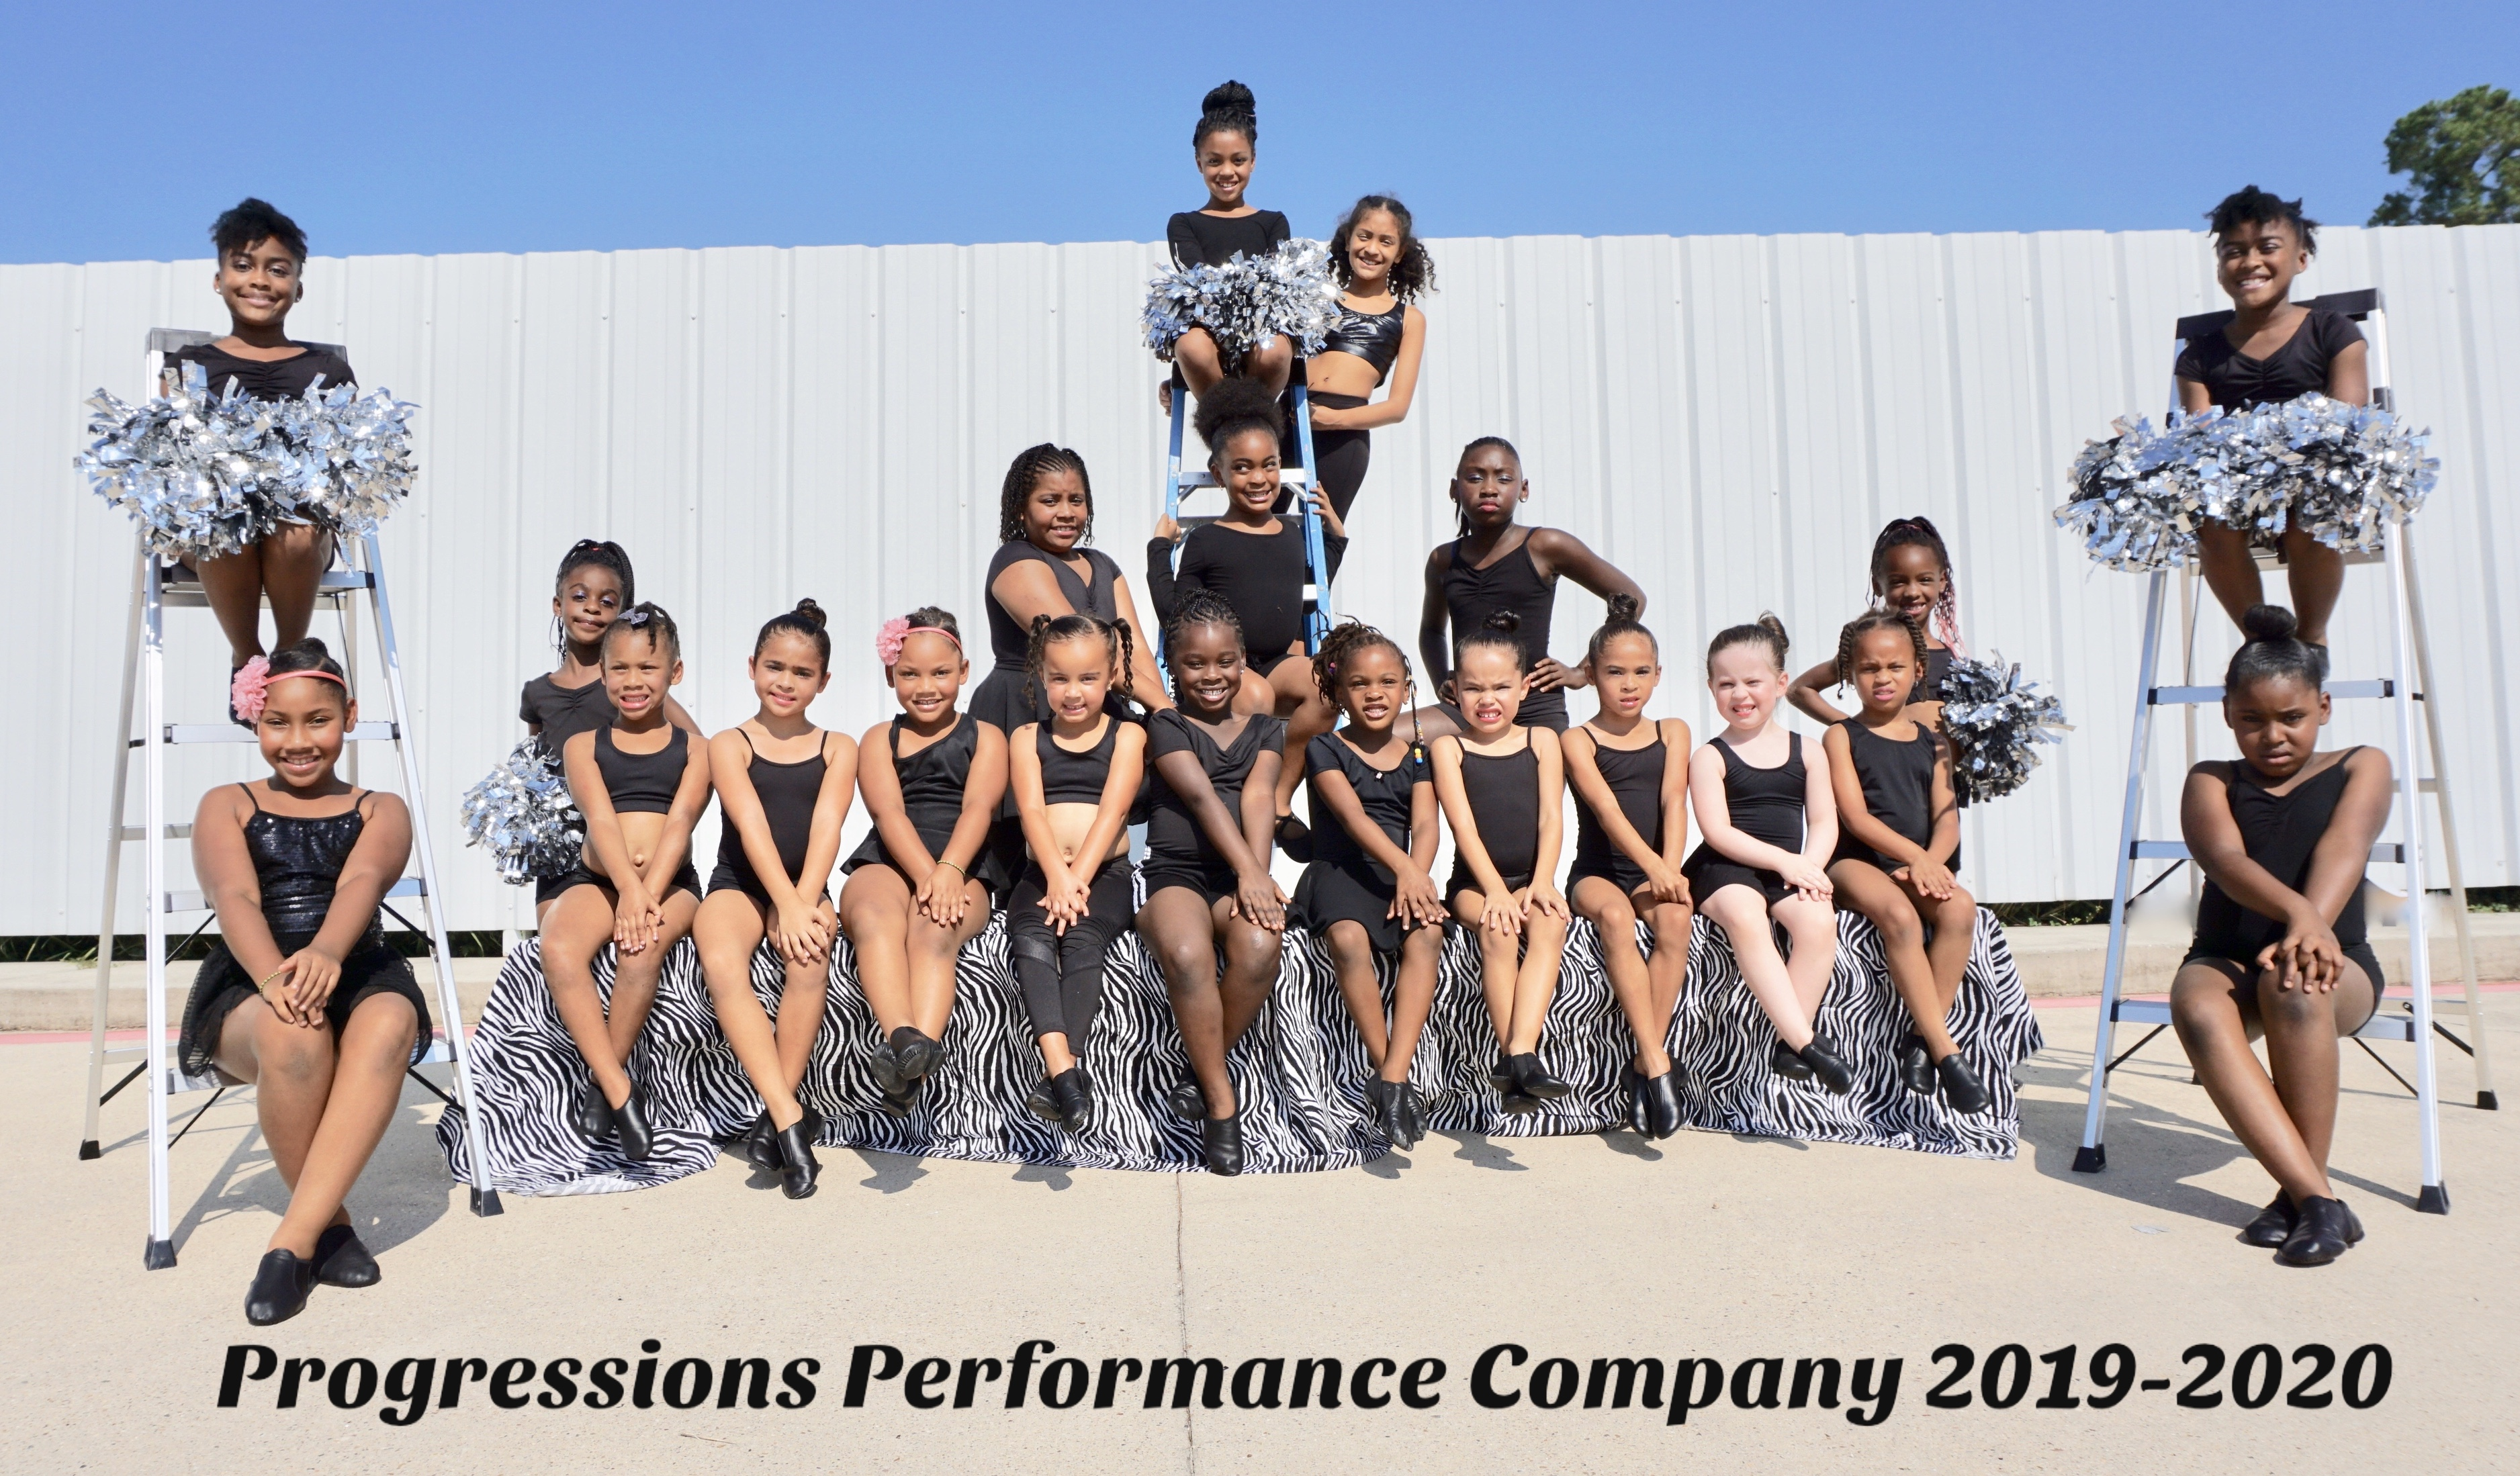 Progressions Performance Company